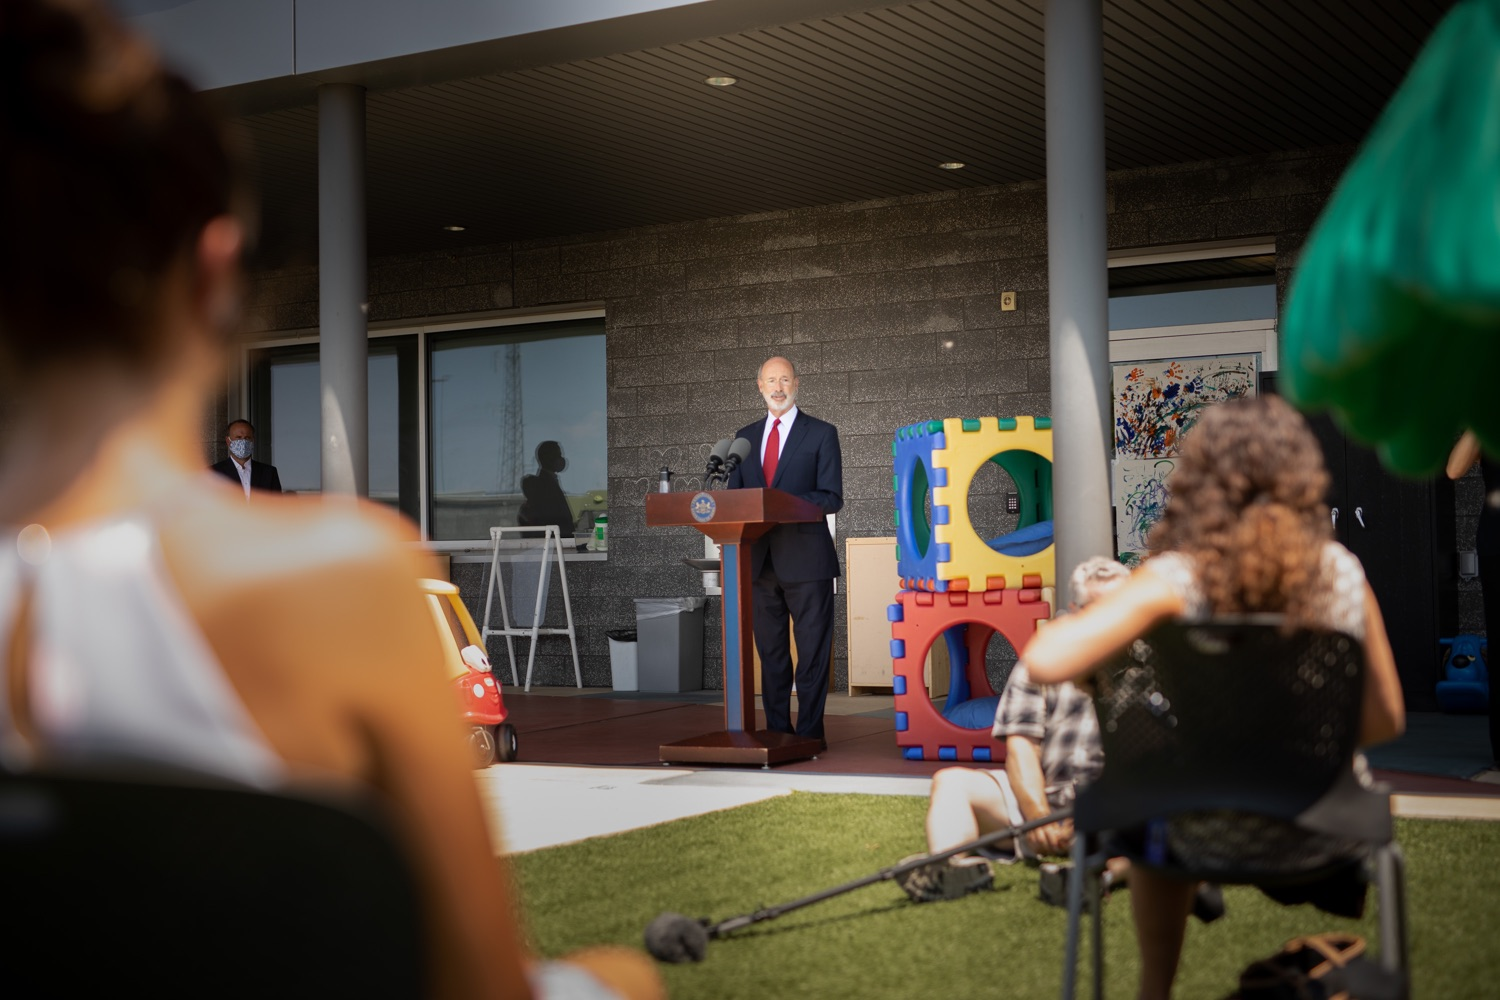 "<a href=""https://filesource.wostreaming.net/commonwealthofpa/photo/18143_gov_cares_dz_08.jpg"" target=""_blank"">⇣ Download Photo<br></a>Pennsylvania Governor Tom Wolf speaking with the press.  Governor Tom Wolf visited the child care center at PSECU headquarters in Harrisburg today to announce $53 million in additional financial support for child care providers that have suffered during COVID-19.  Harrisburg, PA  July 6, 2020.."